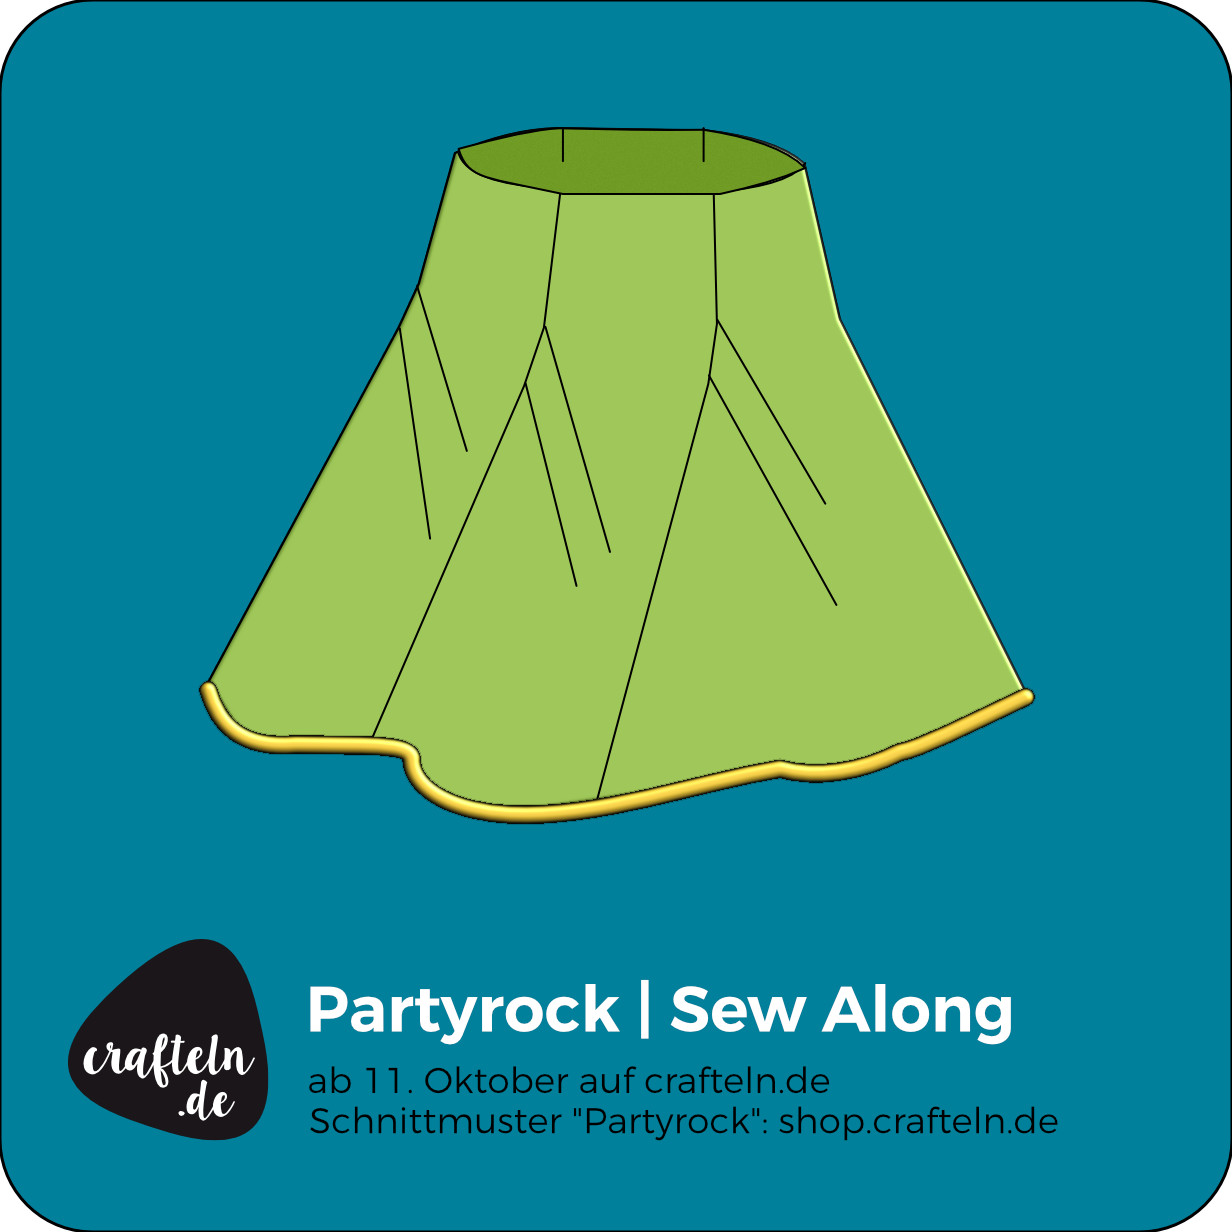 Partyrock-Sew Along